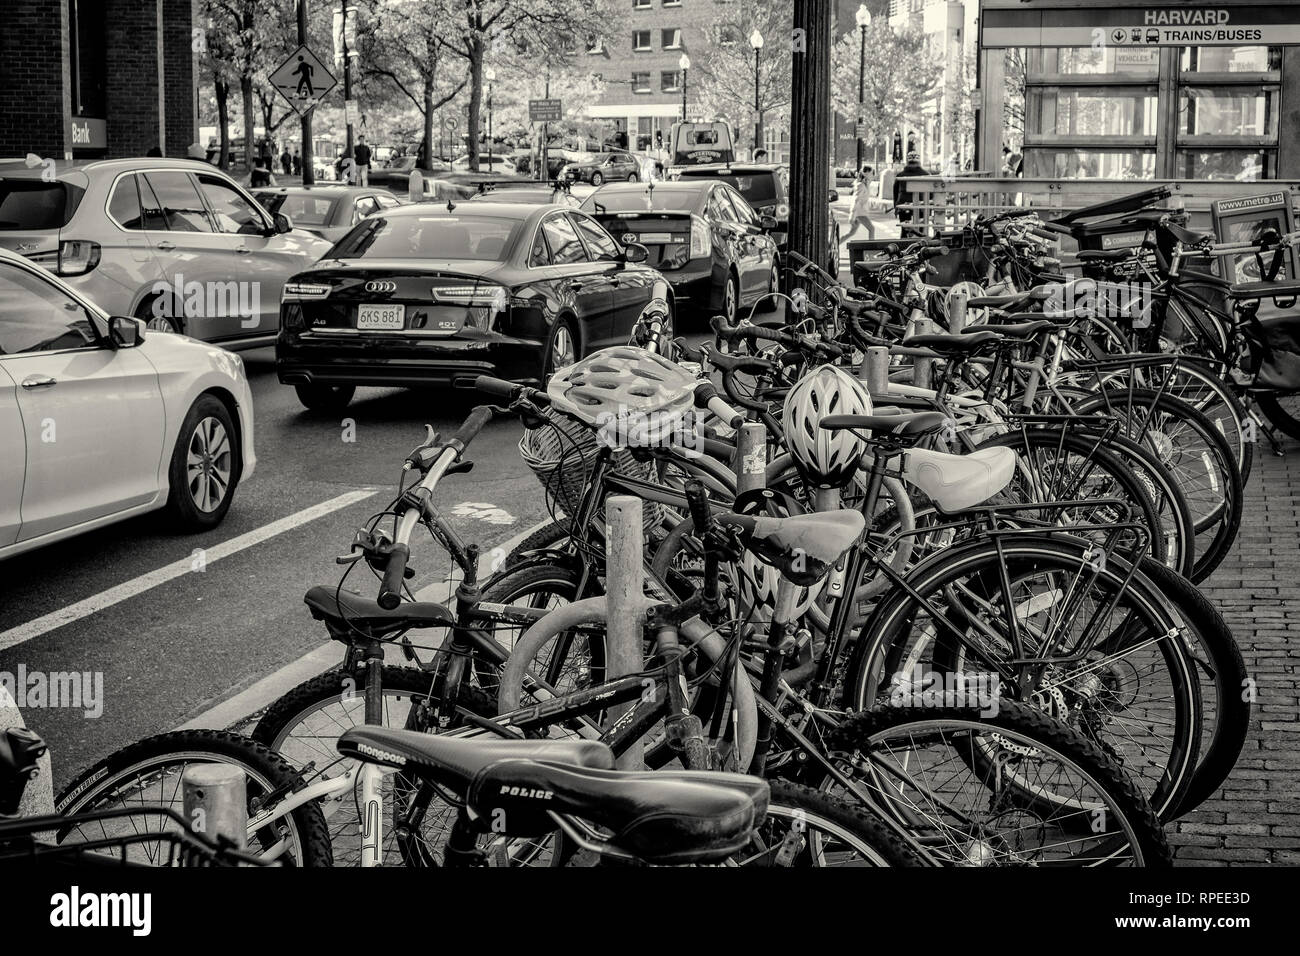 Heavy traffic congestion in Harvard Square in Cambridge, MA - Stock Image